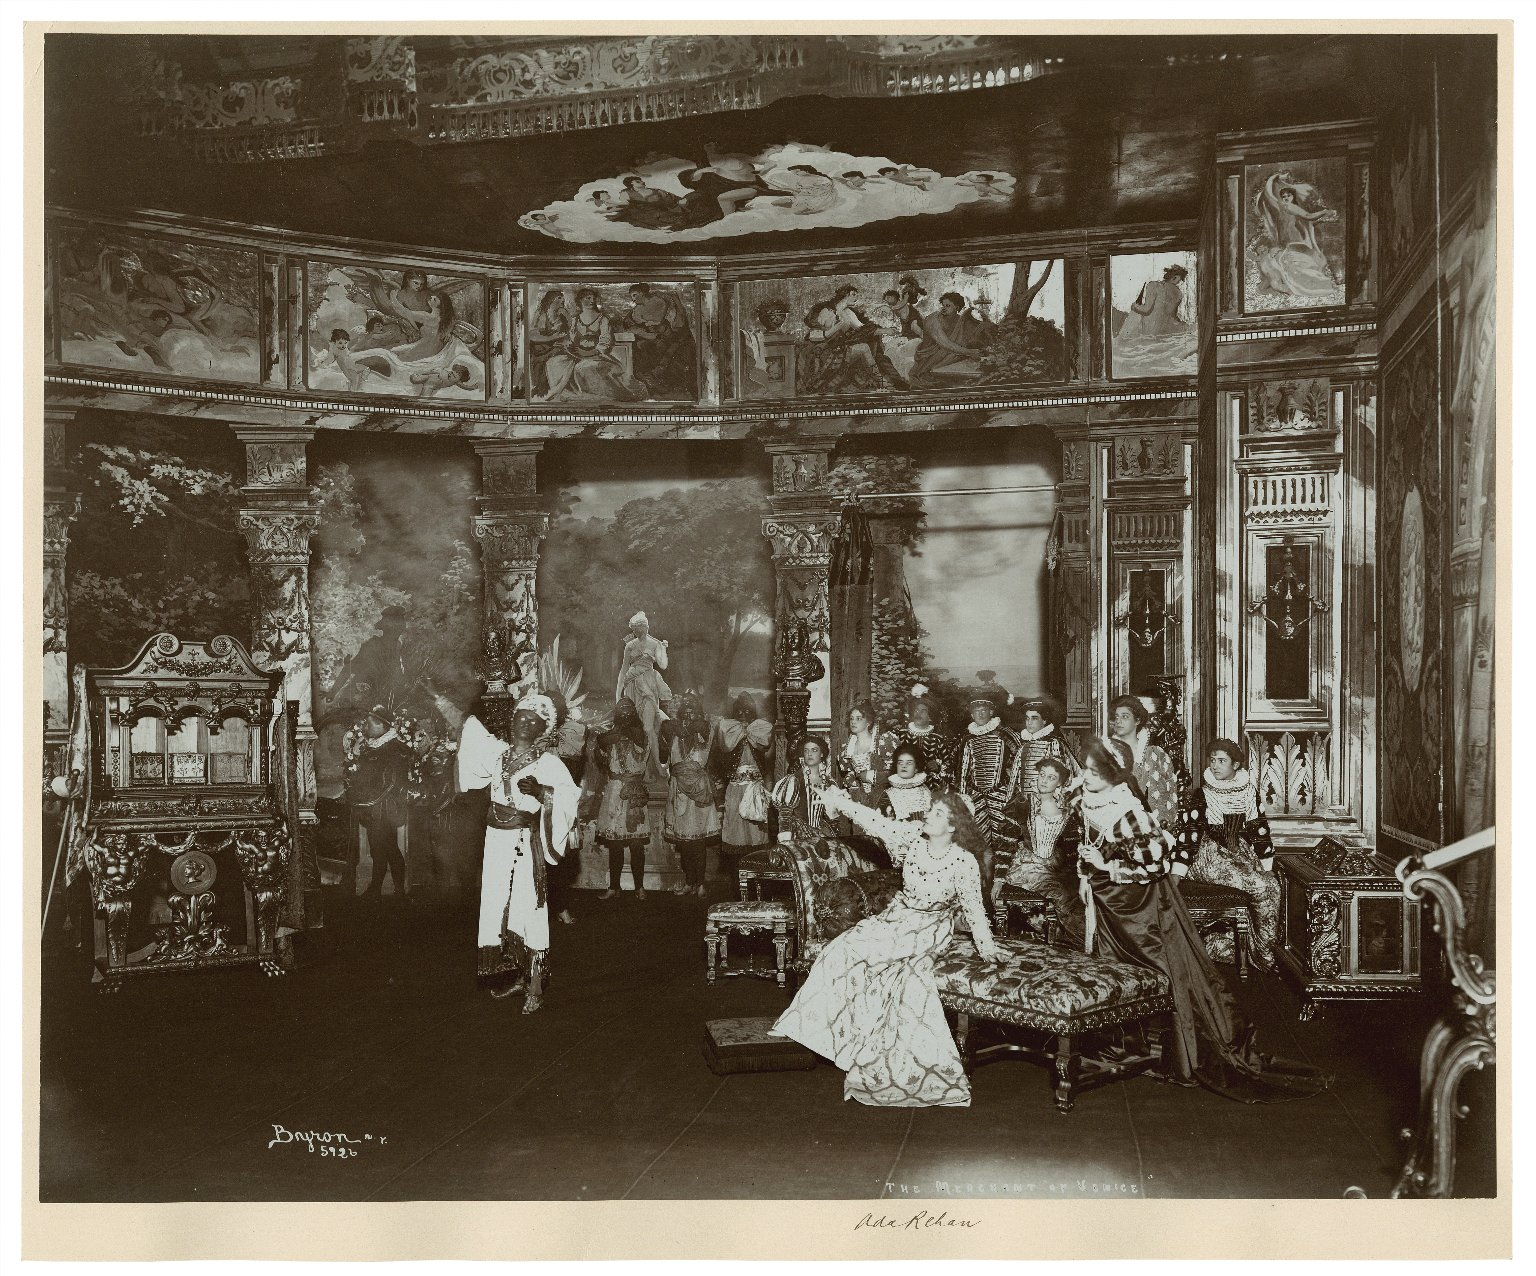 Merchant of Venice [graphic] : [11 photographs of Augustin Daly's production at the Daly Theatre, New York, 1898] / Byron.